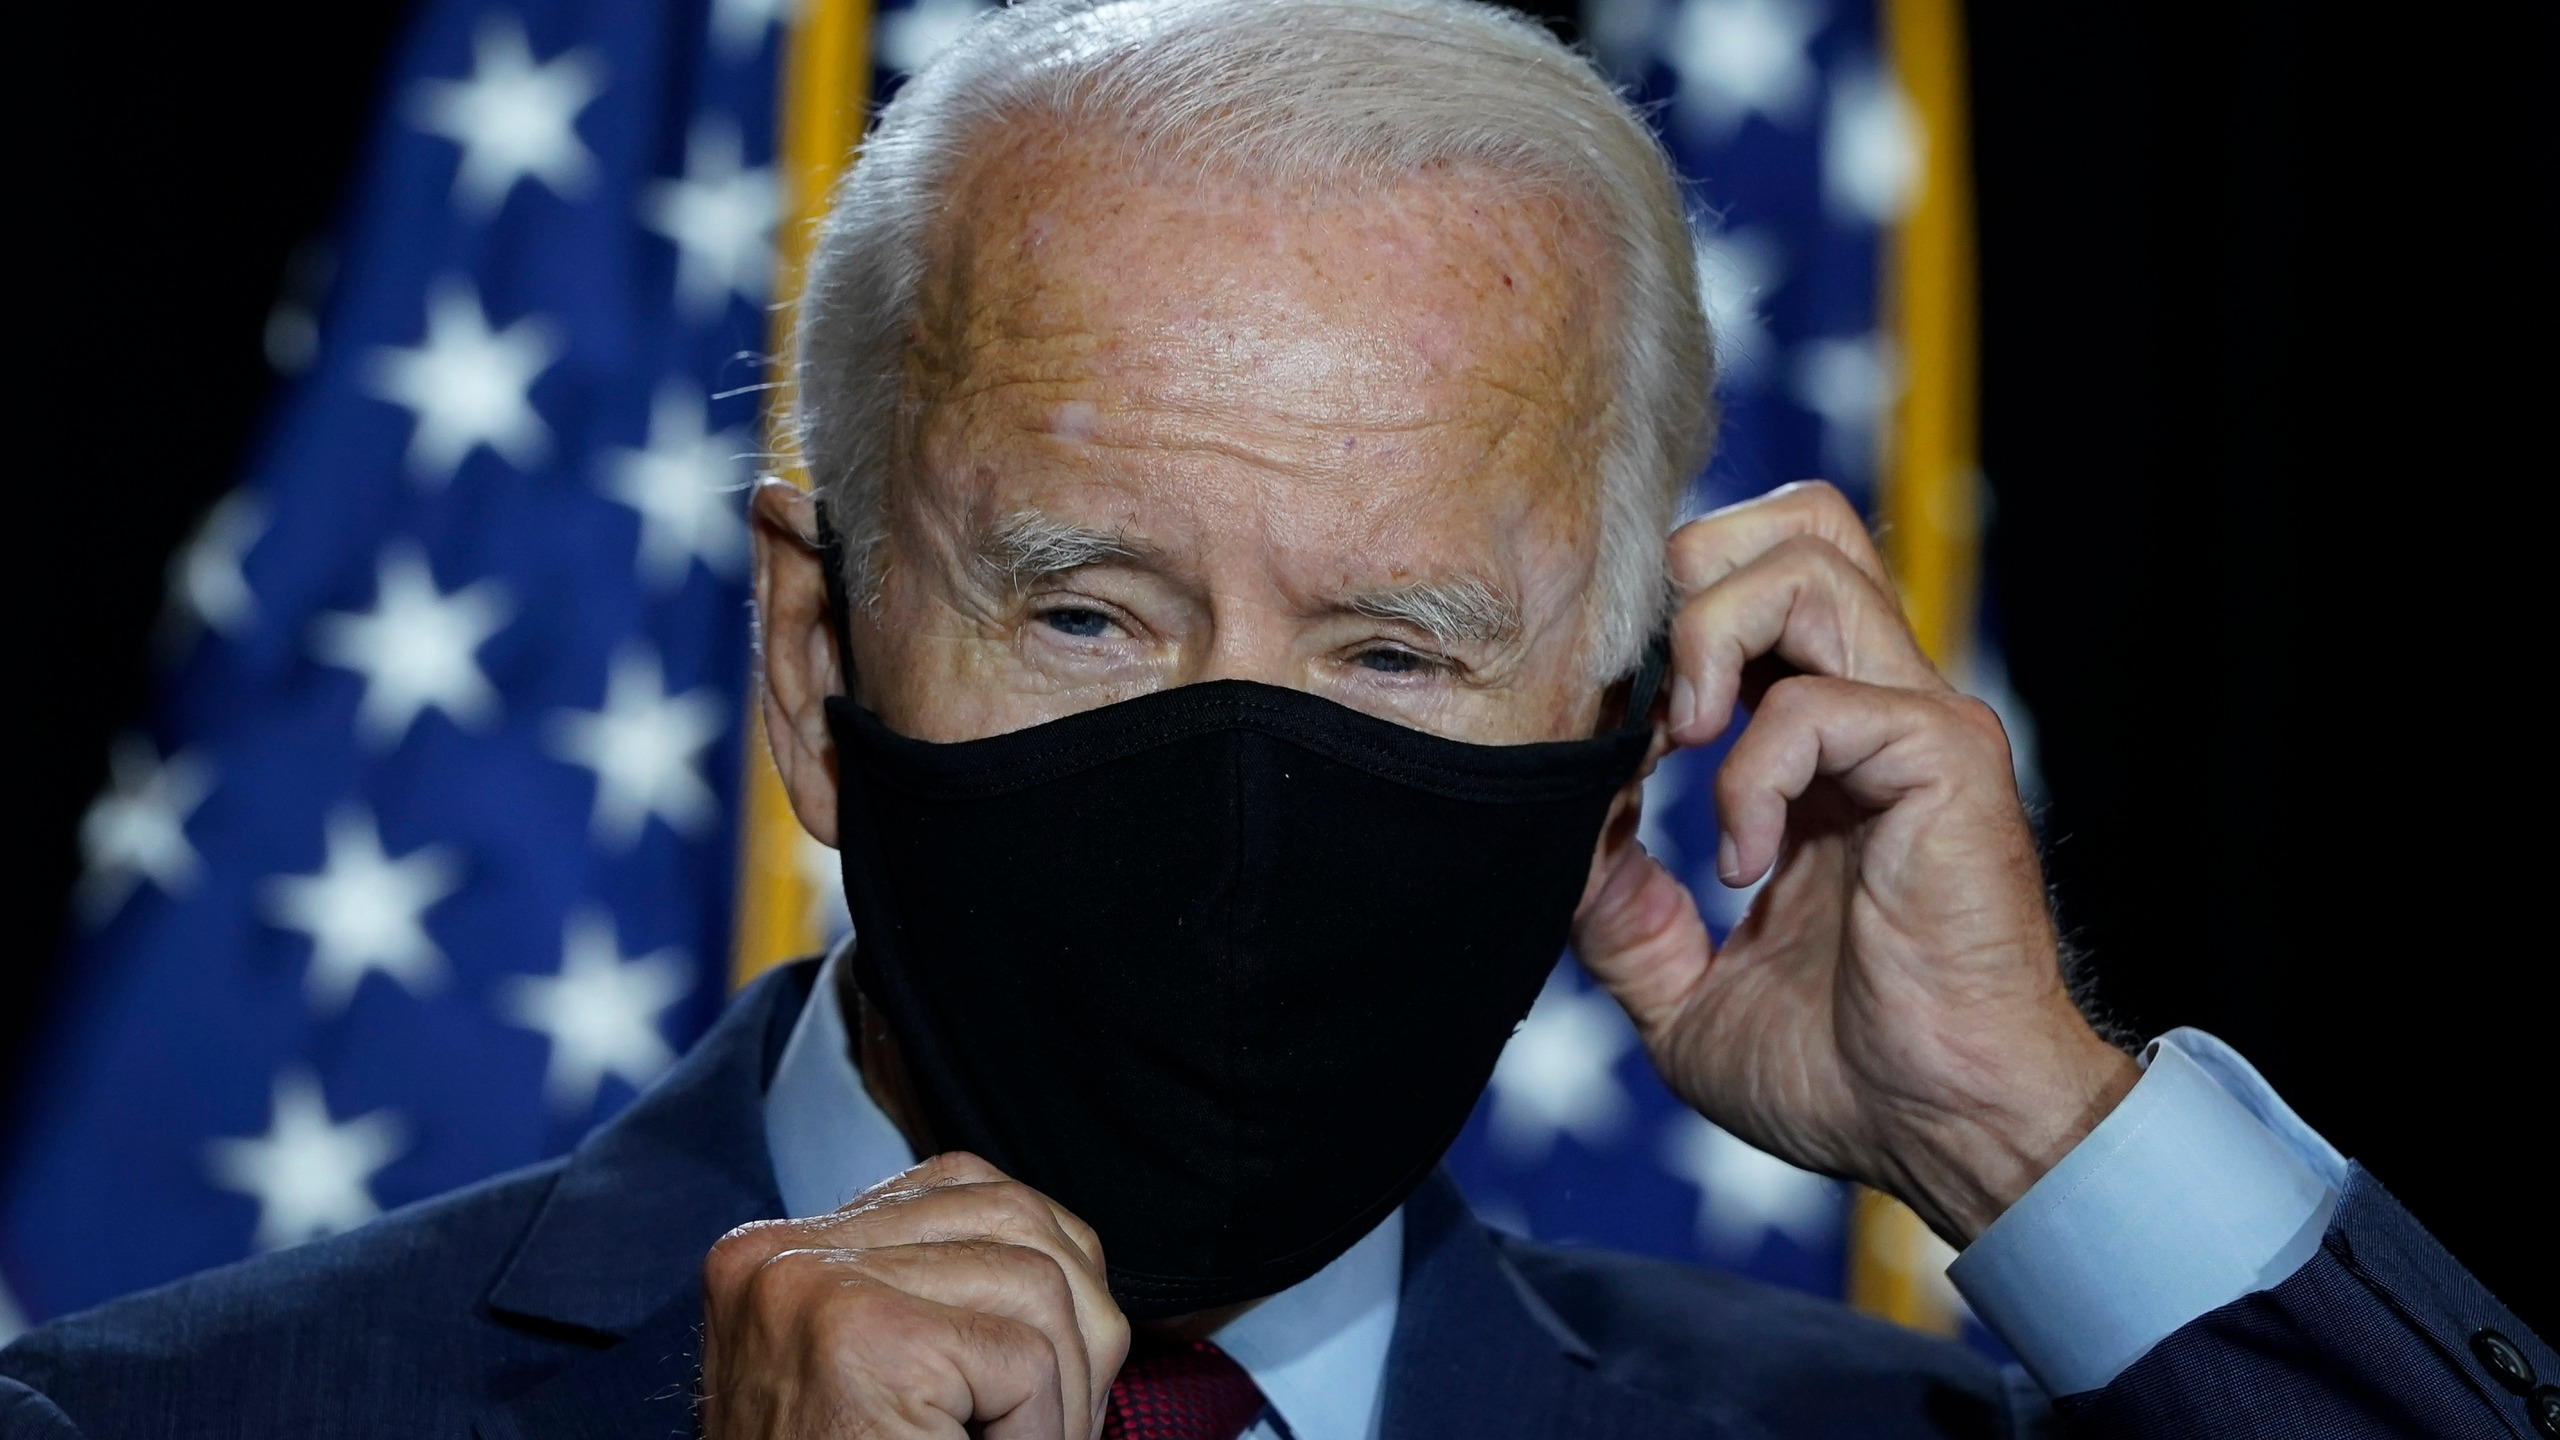 Presumptive Democratic presidential nominee former and Vice President Joe Biden puts his mask back on after delivering remarks following a coronavirus briefing with health experts at the Hotel DuPont on Aug. 13, 2020 in Wilmington, Delaware. (Drew Angerer/Getty Images)